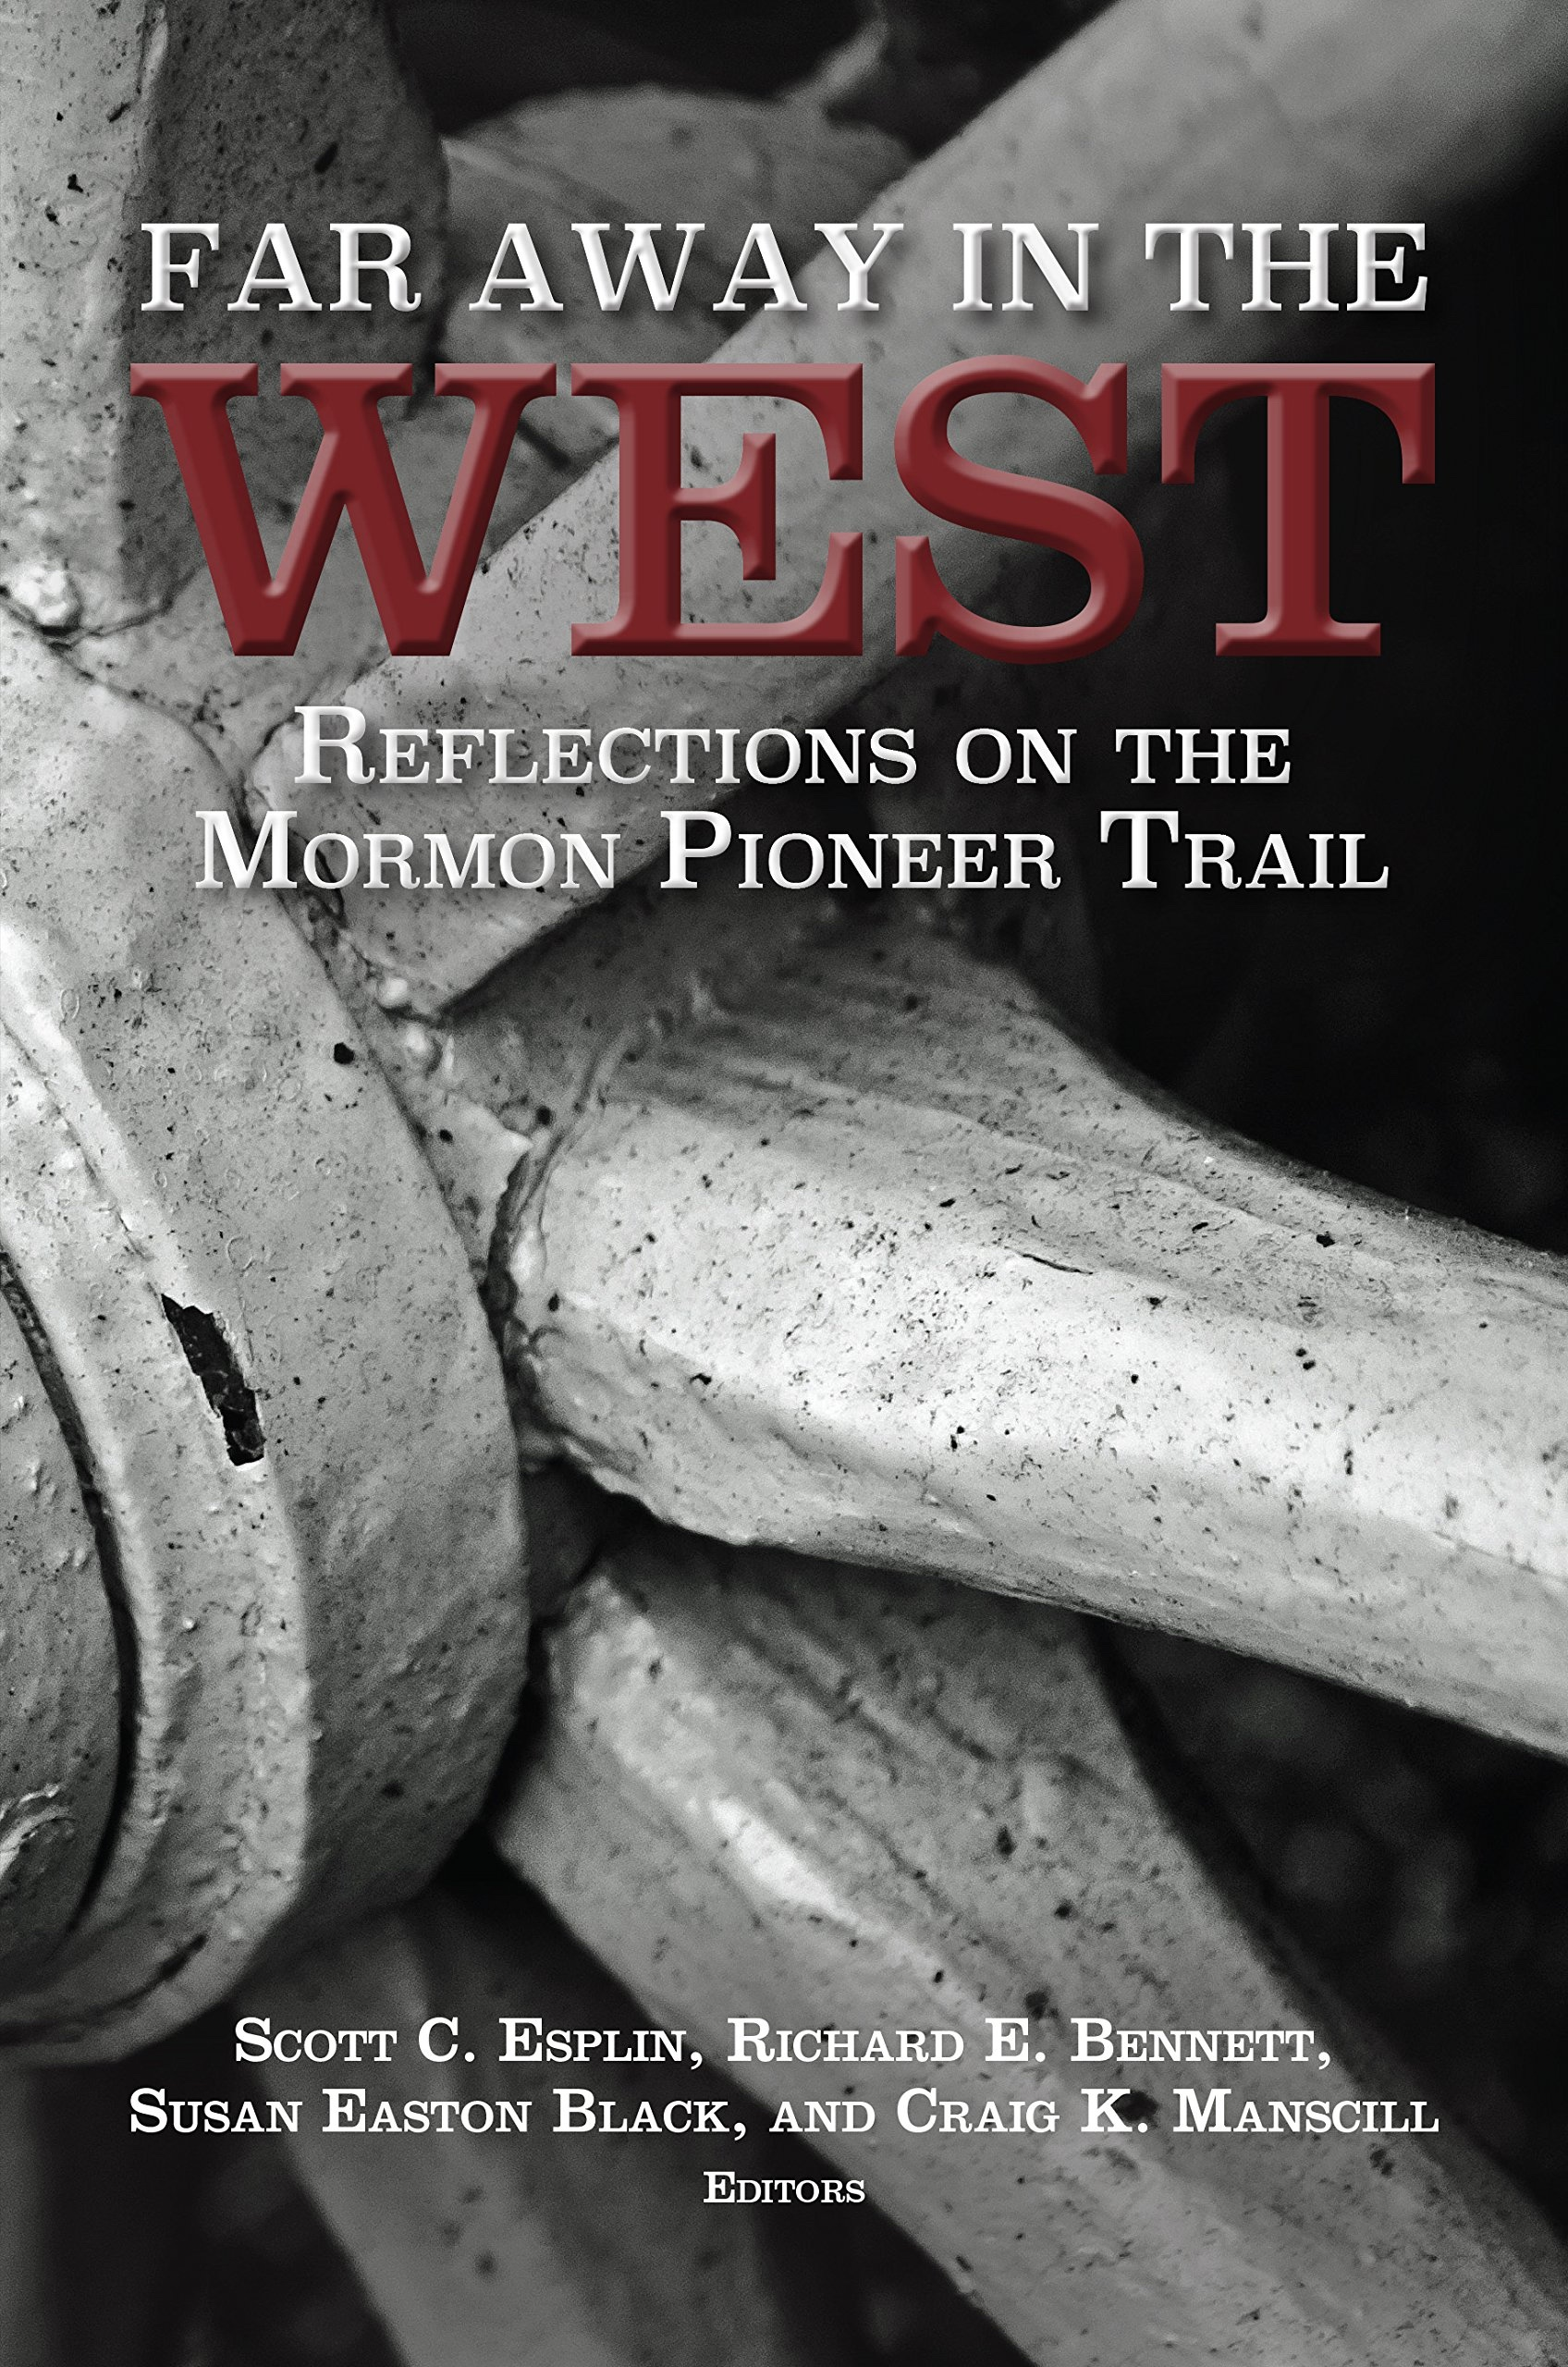 Far Away in the West; Reflections on the Mormon Pioneer Trail